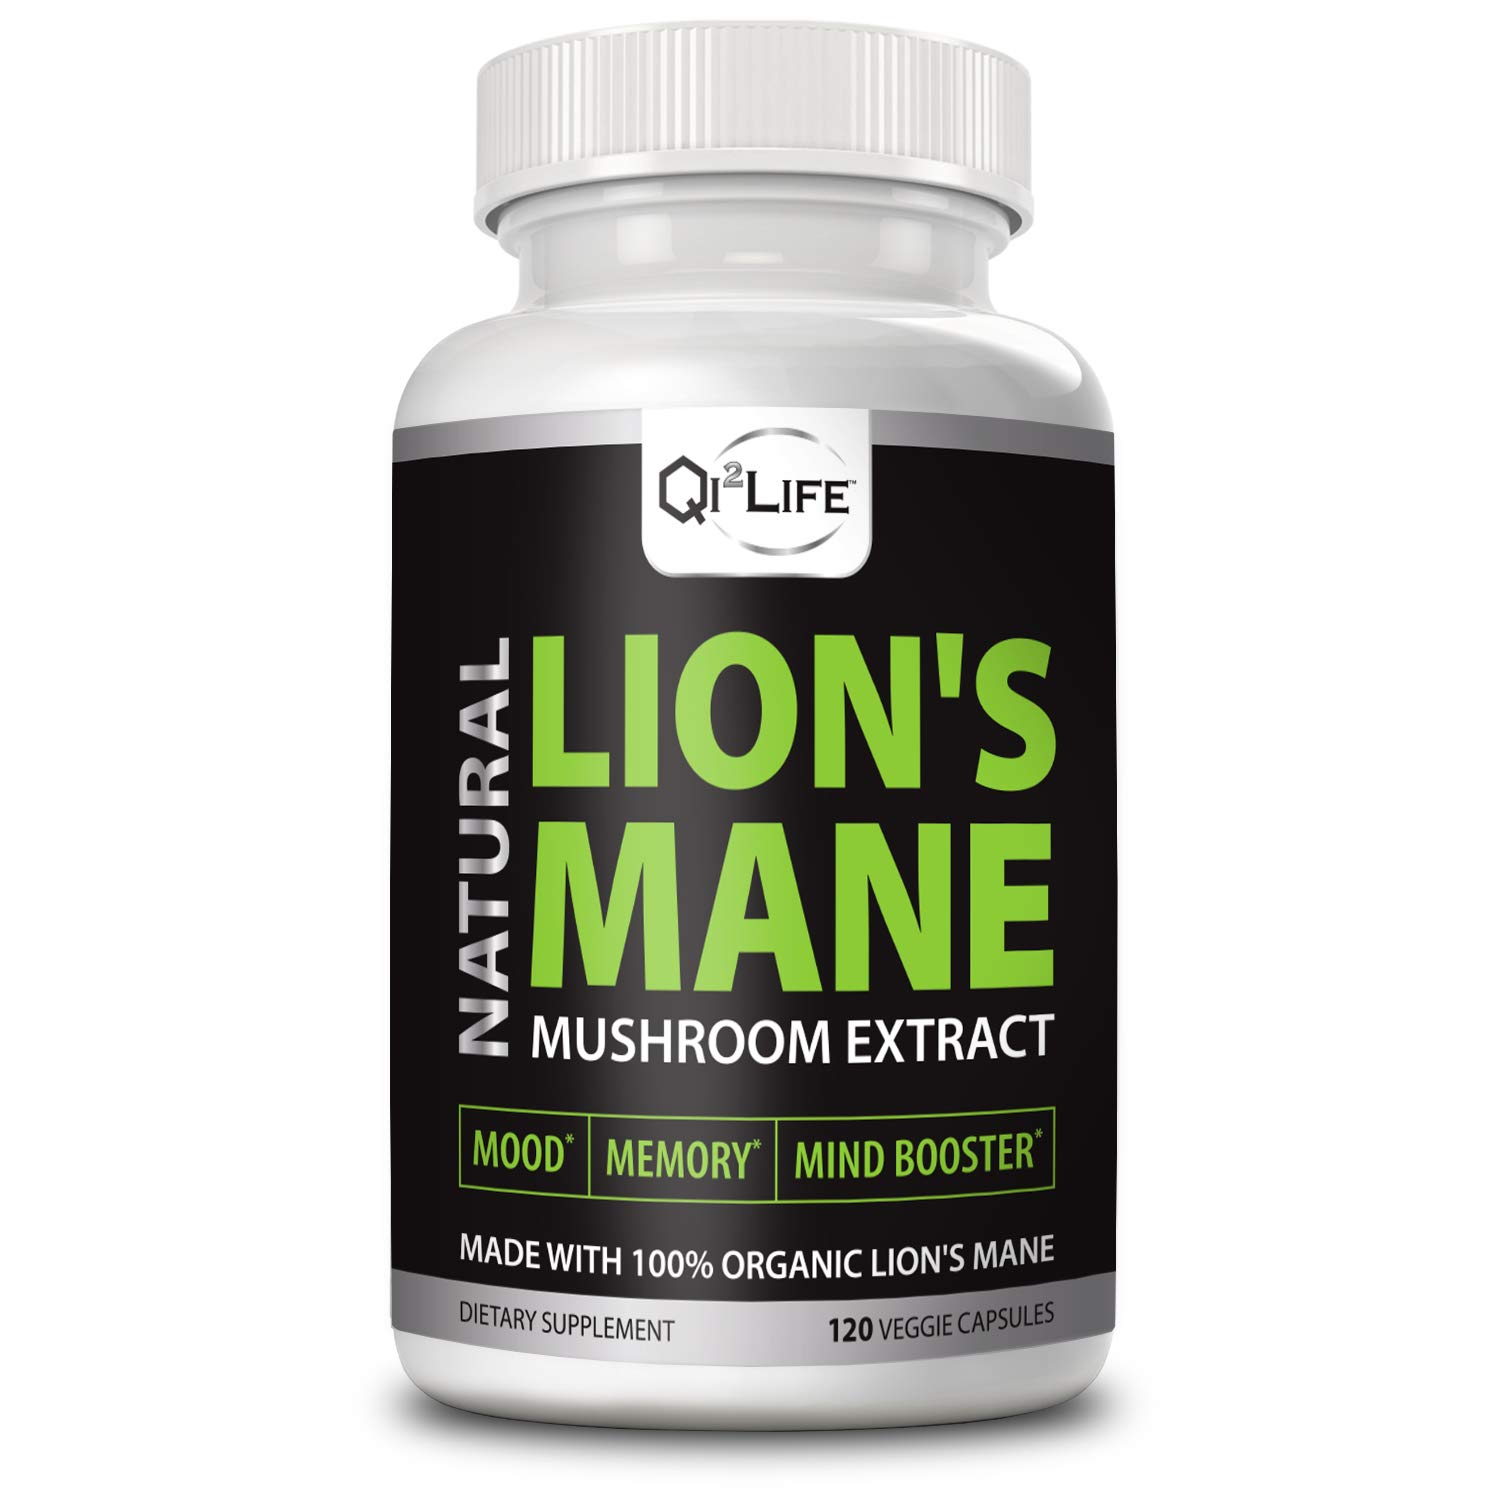 Organic Lion s Mane Mushroom Extract Daily Supplement – Cognitive Function, Mood, Memory and Wellness – Made from Fruiting Bodies, No Fillers – 120 Veg. Capsules